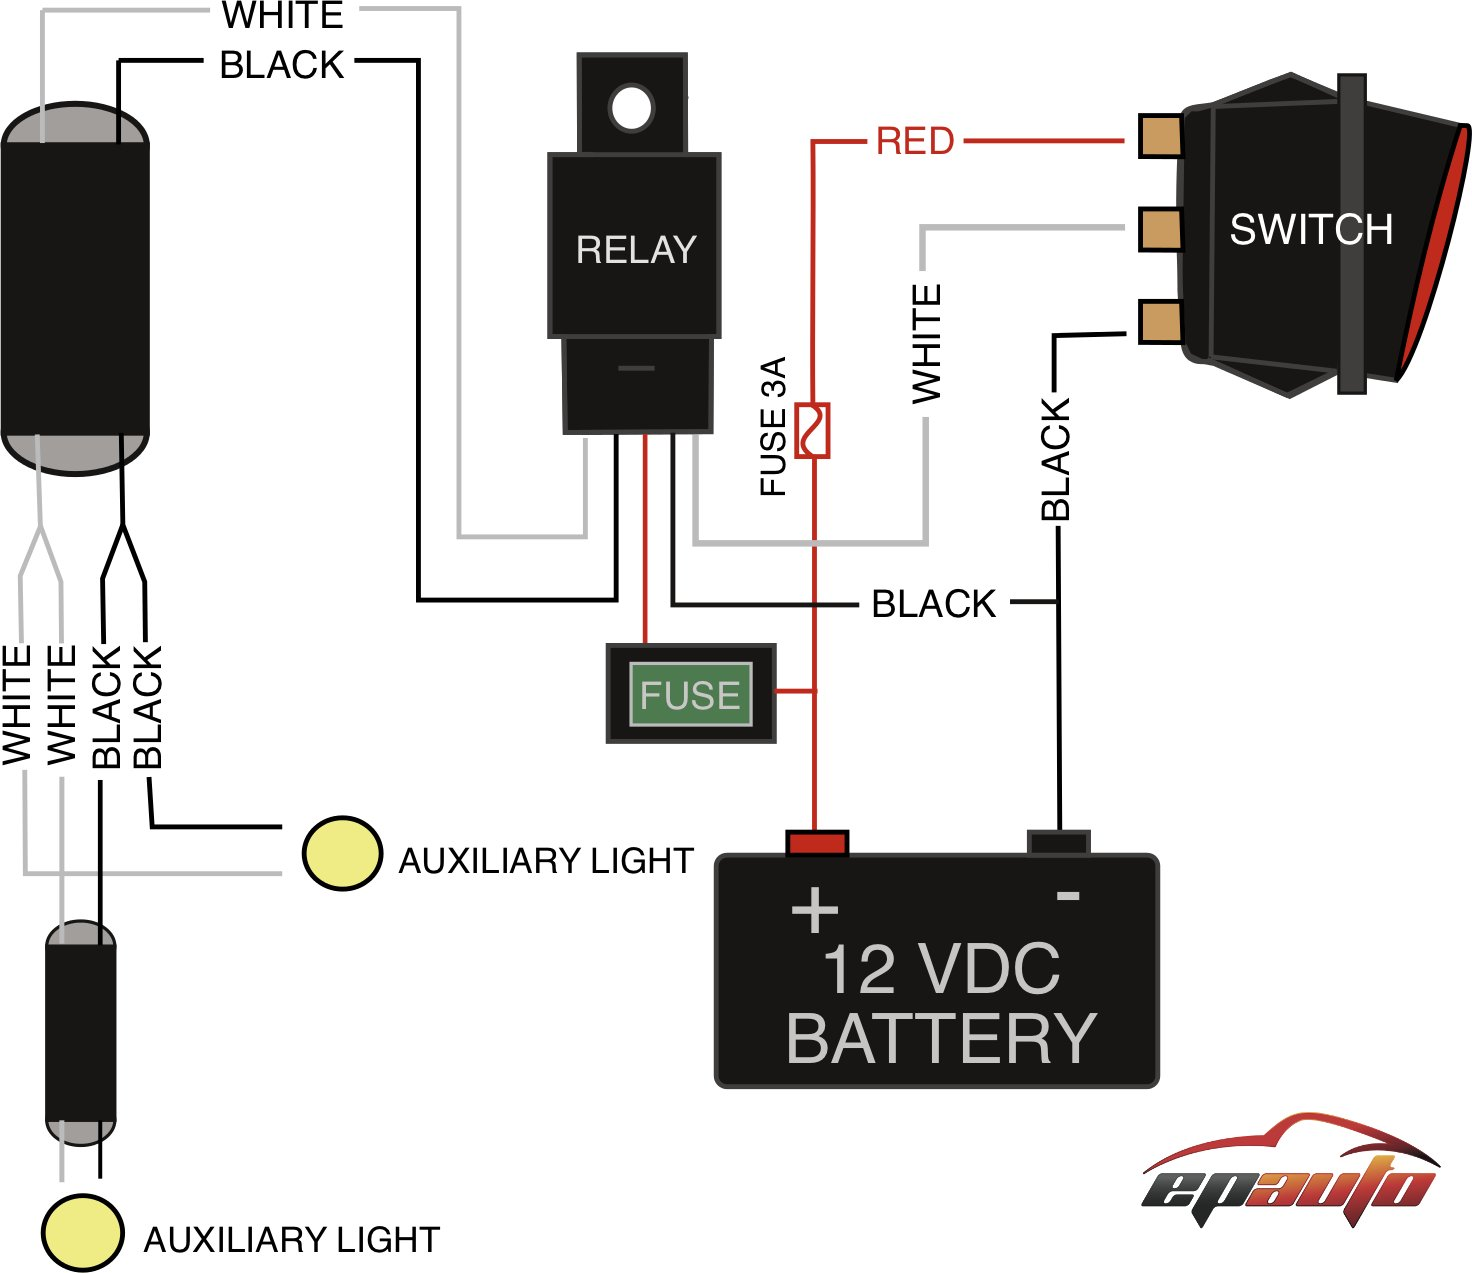 [SCHEMATICS_4ER]  7F53893 Led Light Bar Wiring Diagram With Relay | Wiring Library | Led Bar Wiring Diagram |  | Wiring Library